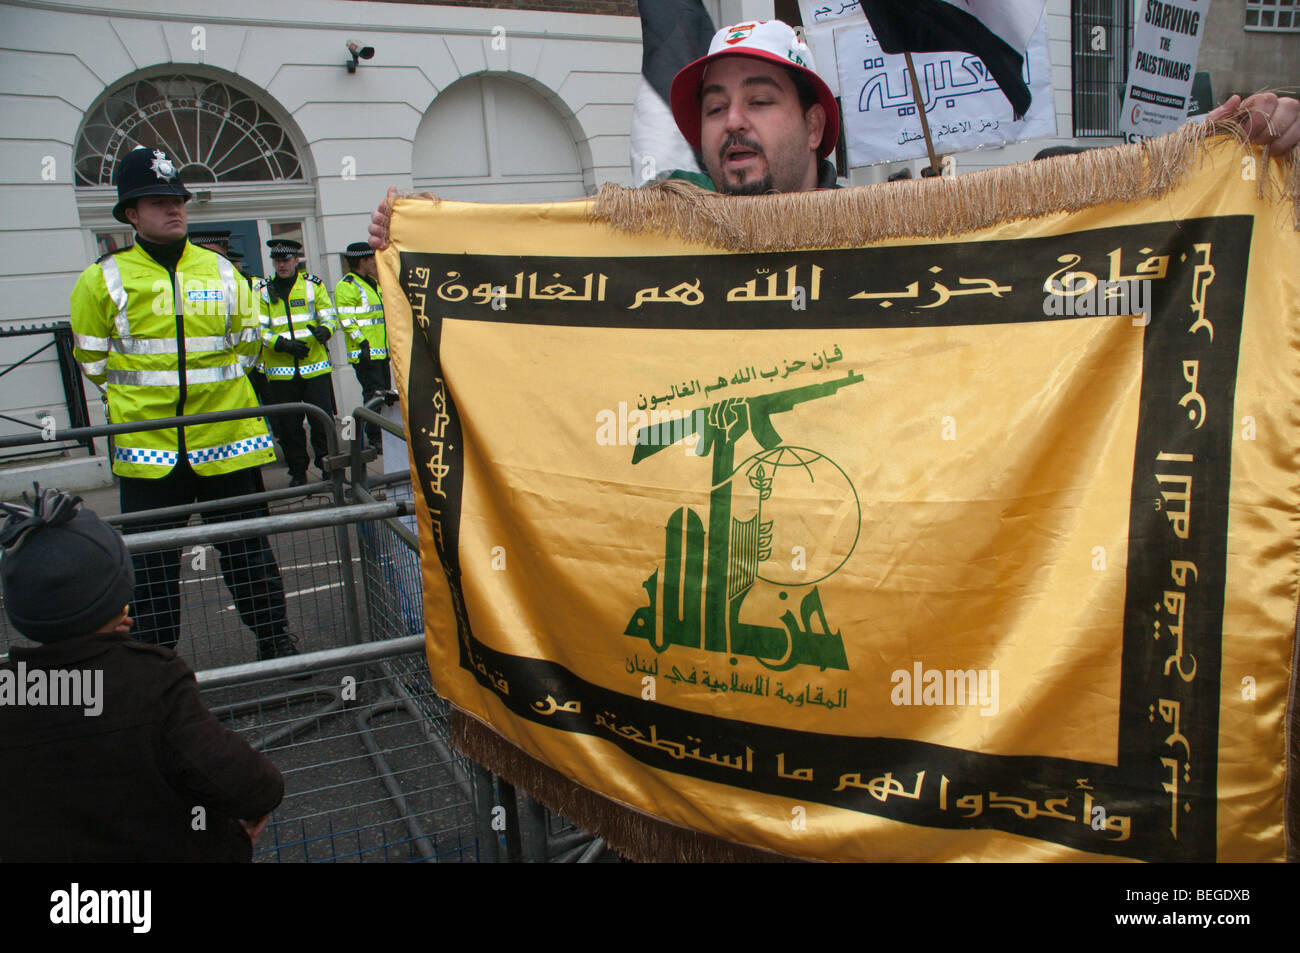 Police outside Egyptian Embassy and man with Hezbollah flag at protest calling for Gaza border to be reopened - Stock Image